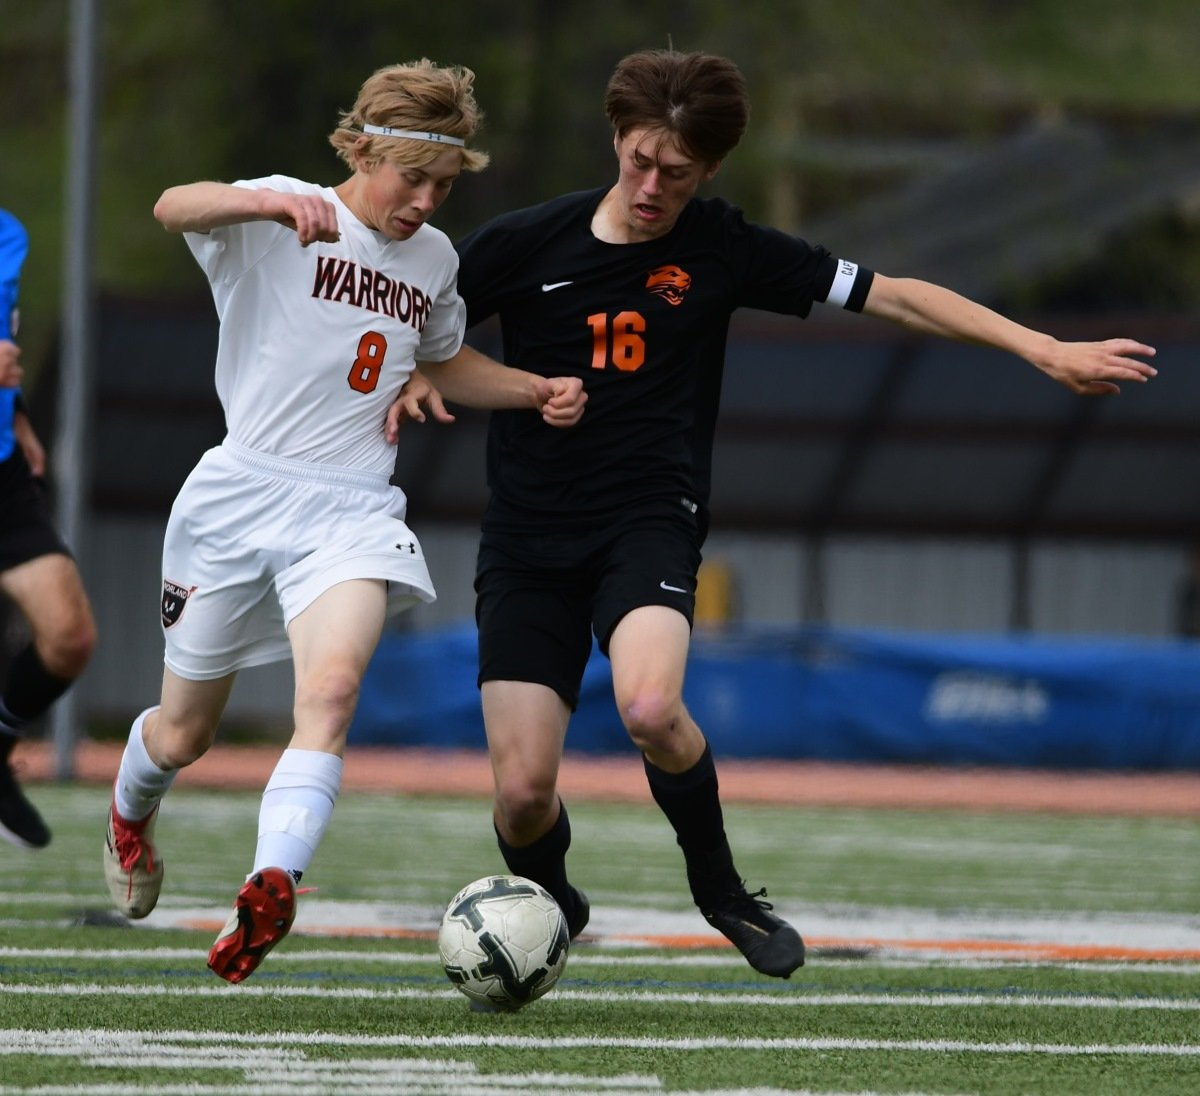 PHS sophomore Sam Bauer (right) battles Worland's Daniel Weyrich for possession of the ball during Saturday's 3A State Championship game in Jackson. The Warriors won the contest 2-0 to cap an undefeated season.